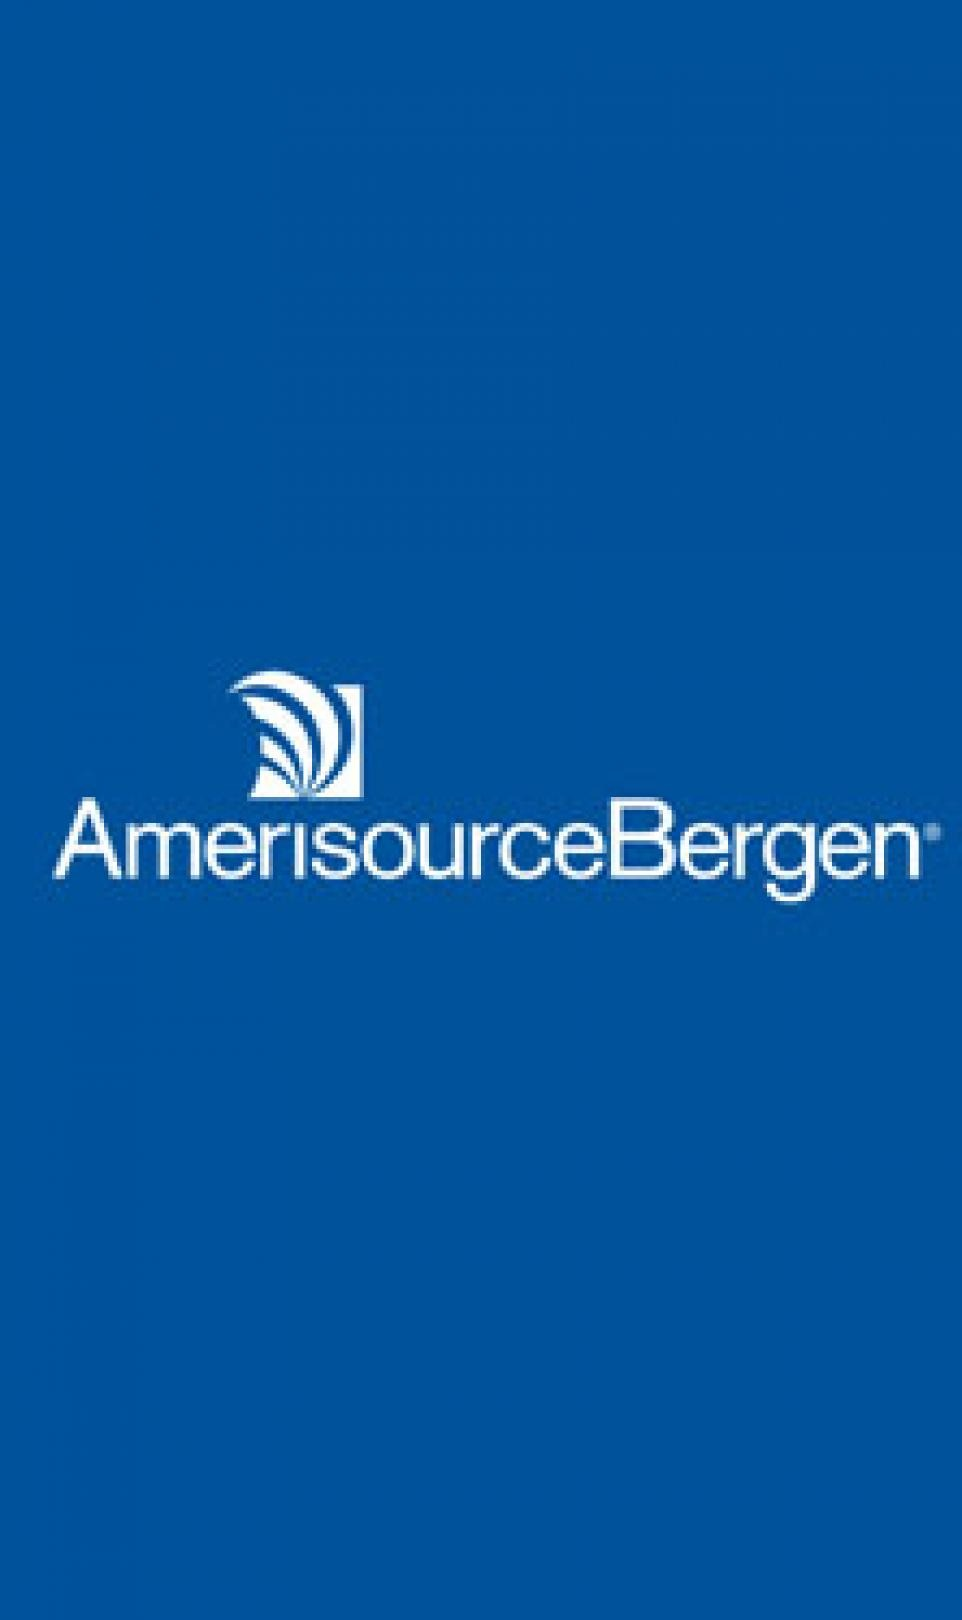 White AmerisourceBergen logo pictured on a blue background